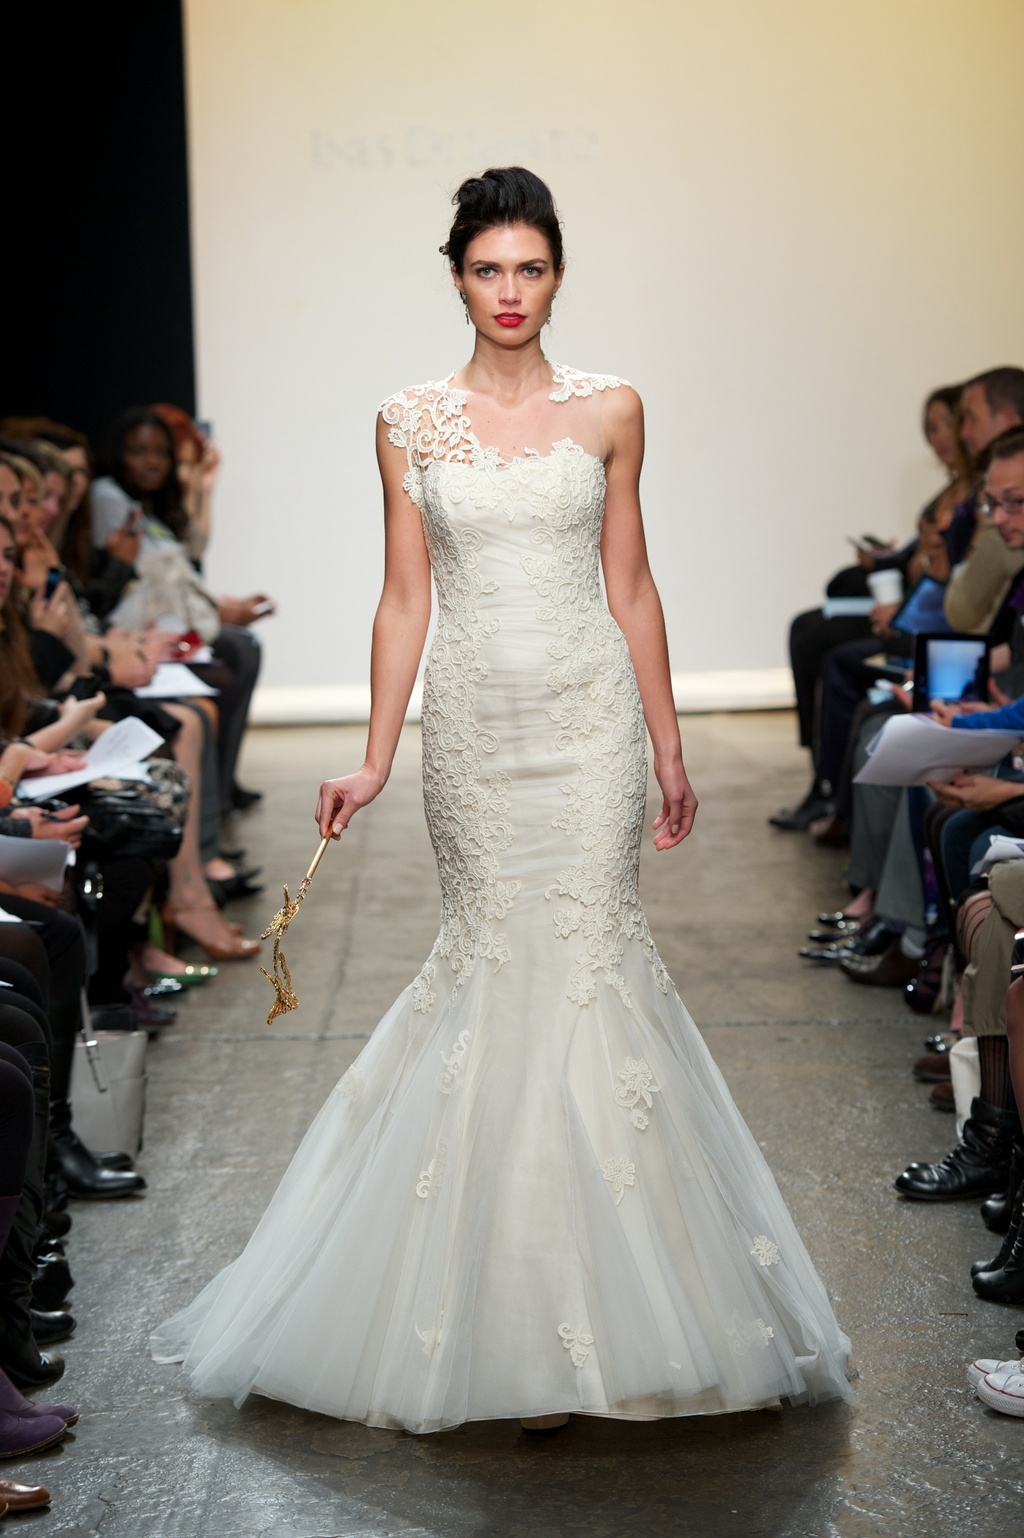 2013 Wedding Dress by Ines di Santo Marghera